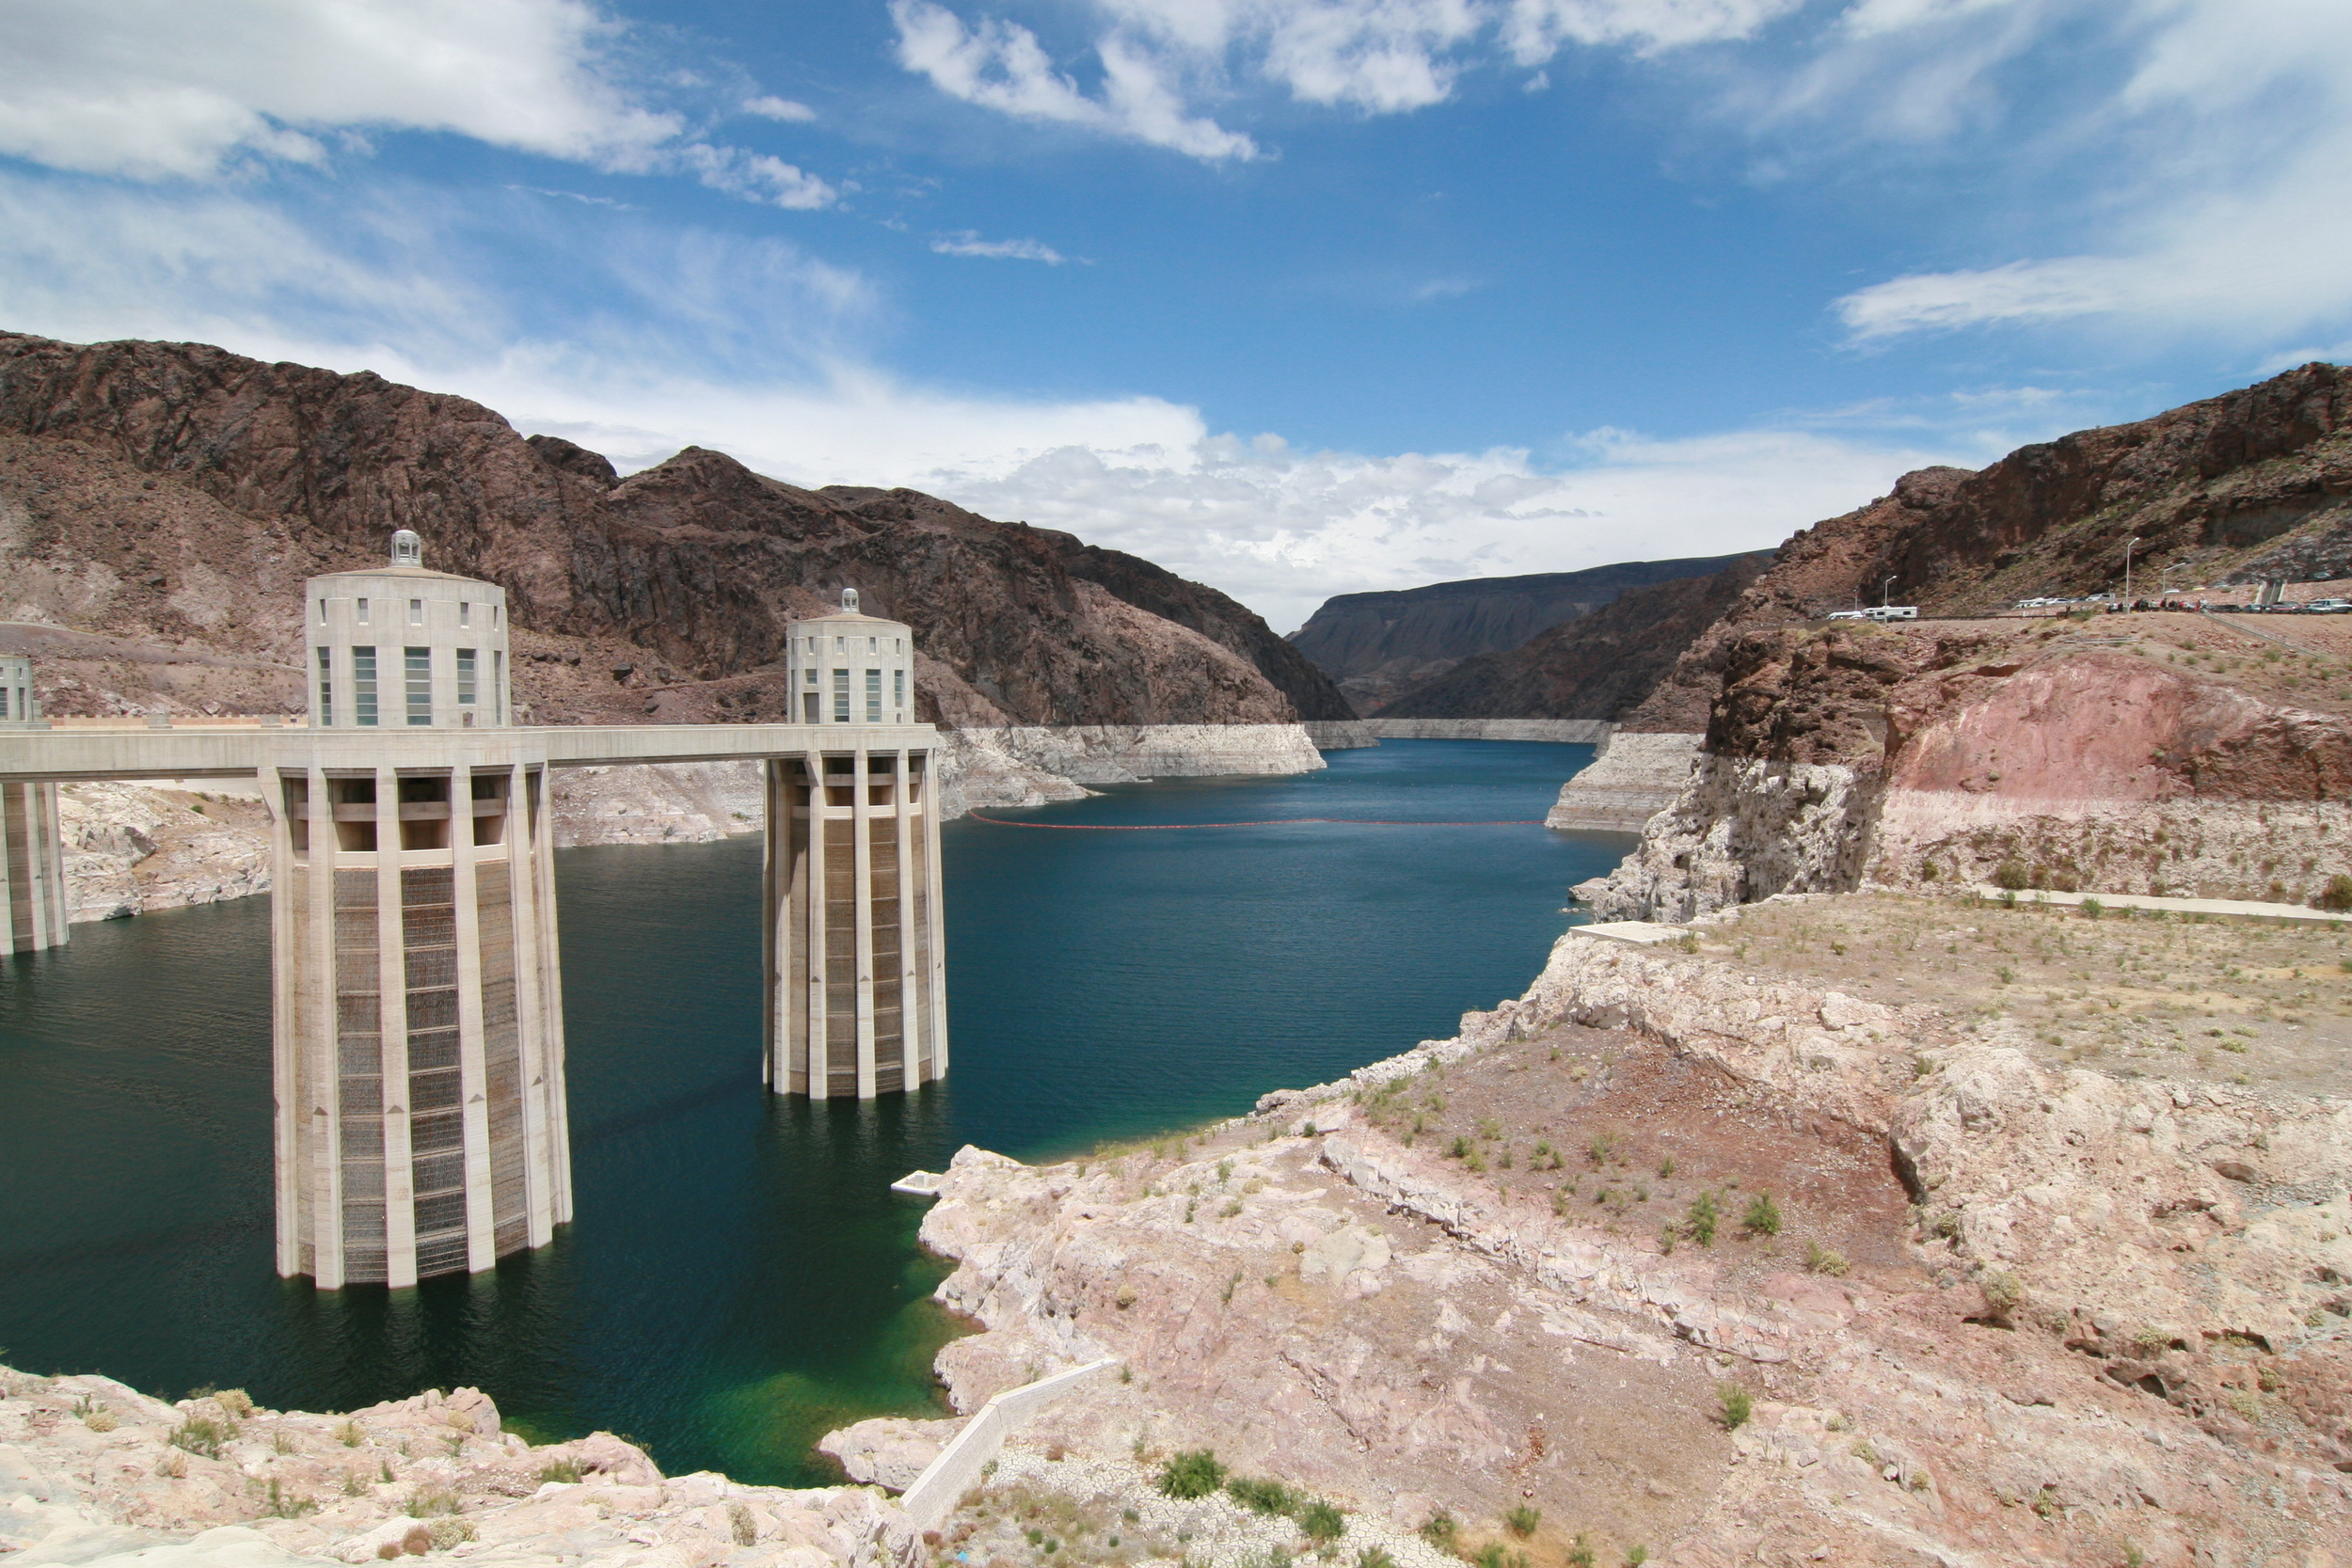 """The """"bathtub ring"""" around Lake Mead at Hoover Dam near Henderson, Nevada is a symbol of the devastating drought in the U.S. Southwest. The bathtub ring is white because of the deposition of minerals on previously submerged surfaces."""